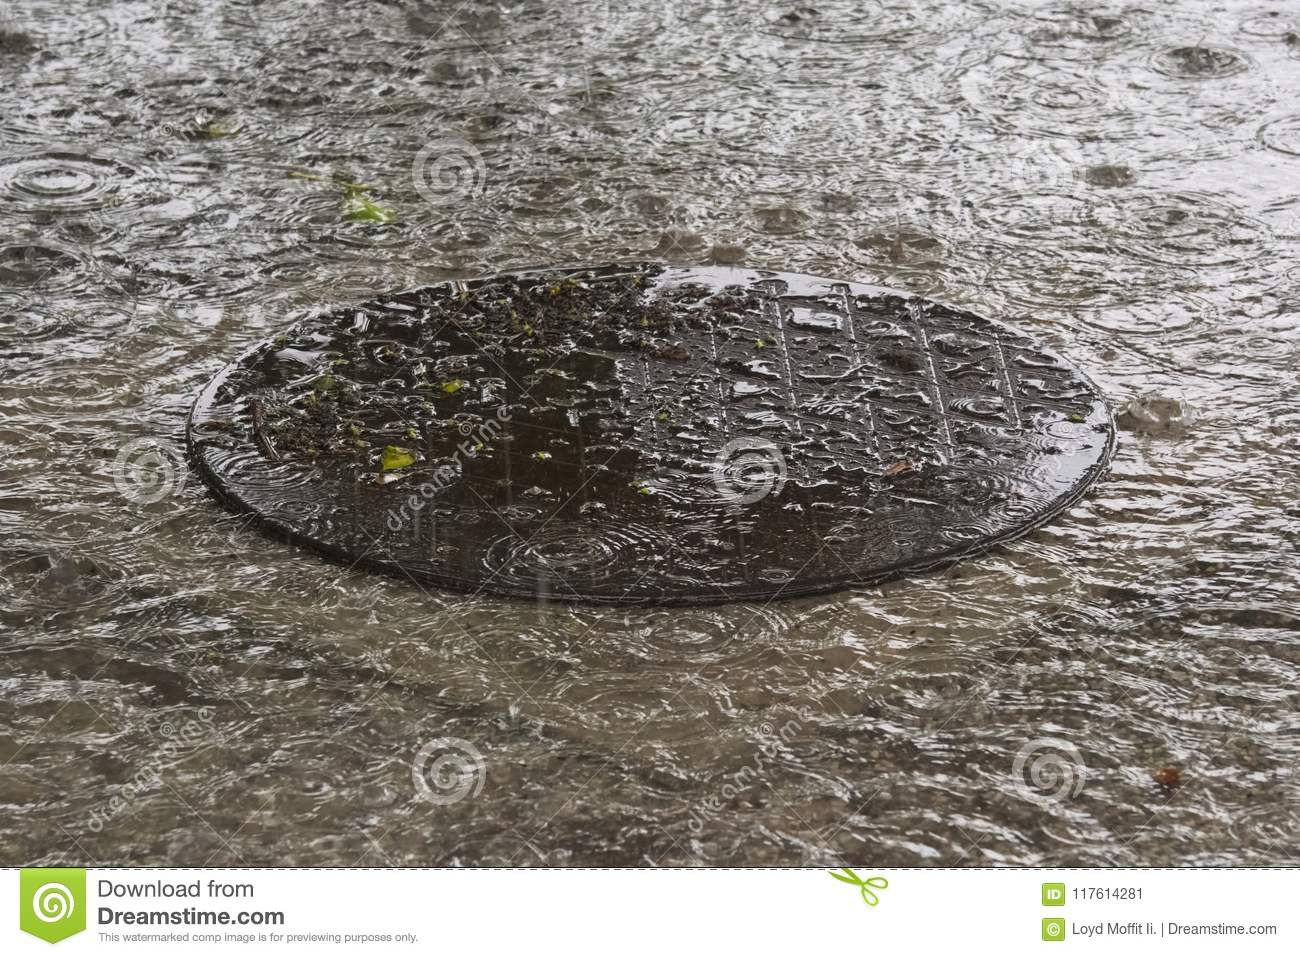 A round, flooded, manhole cover, set during a hard tropical thunderstorm in Thailand.